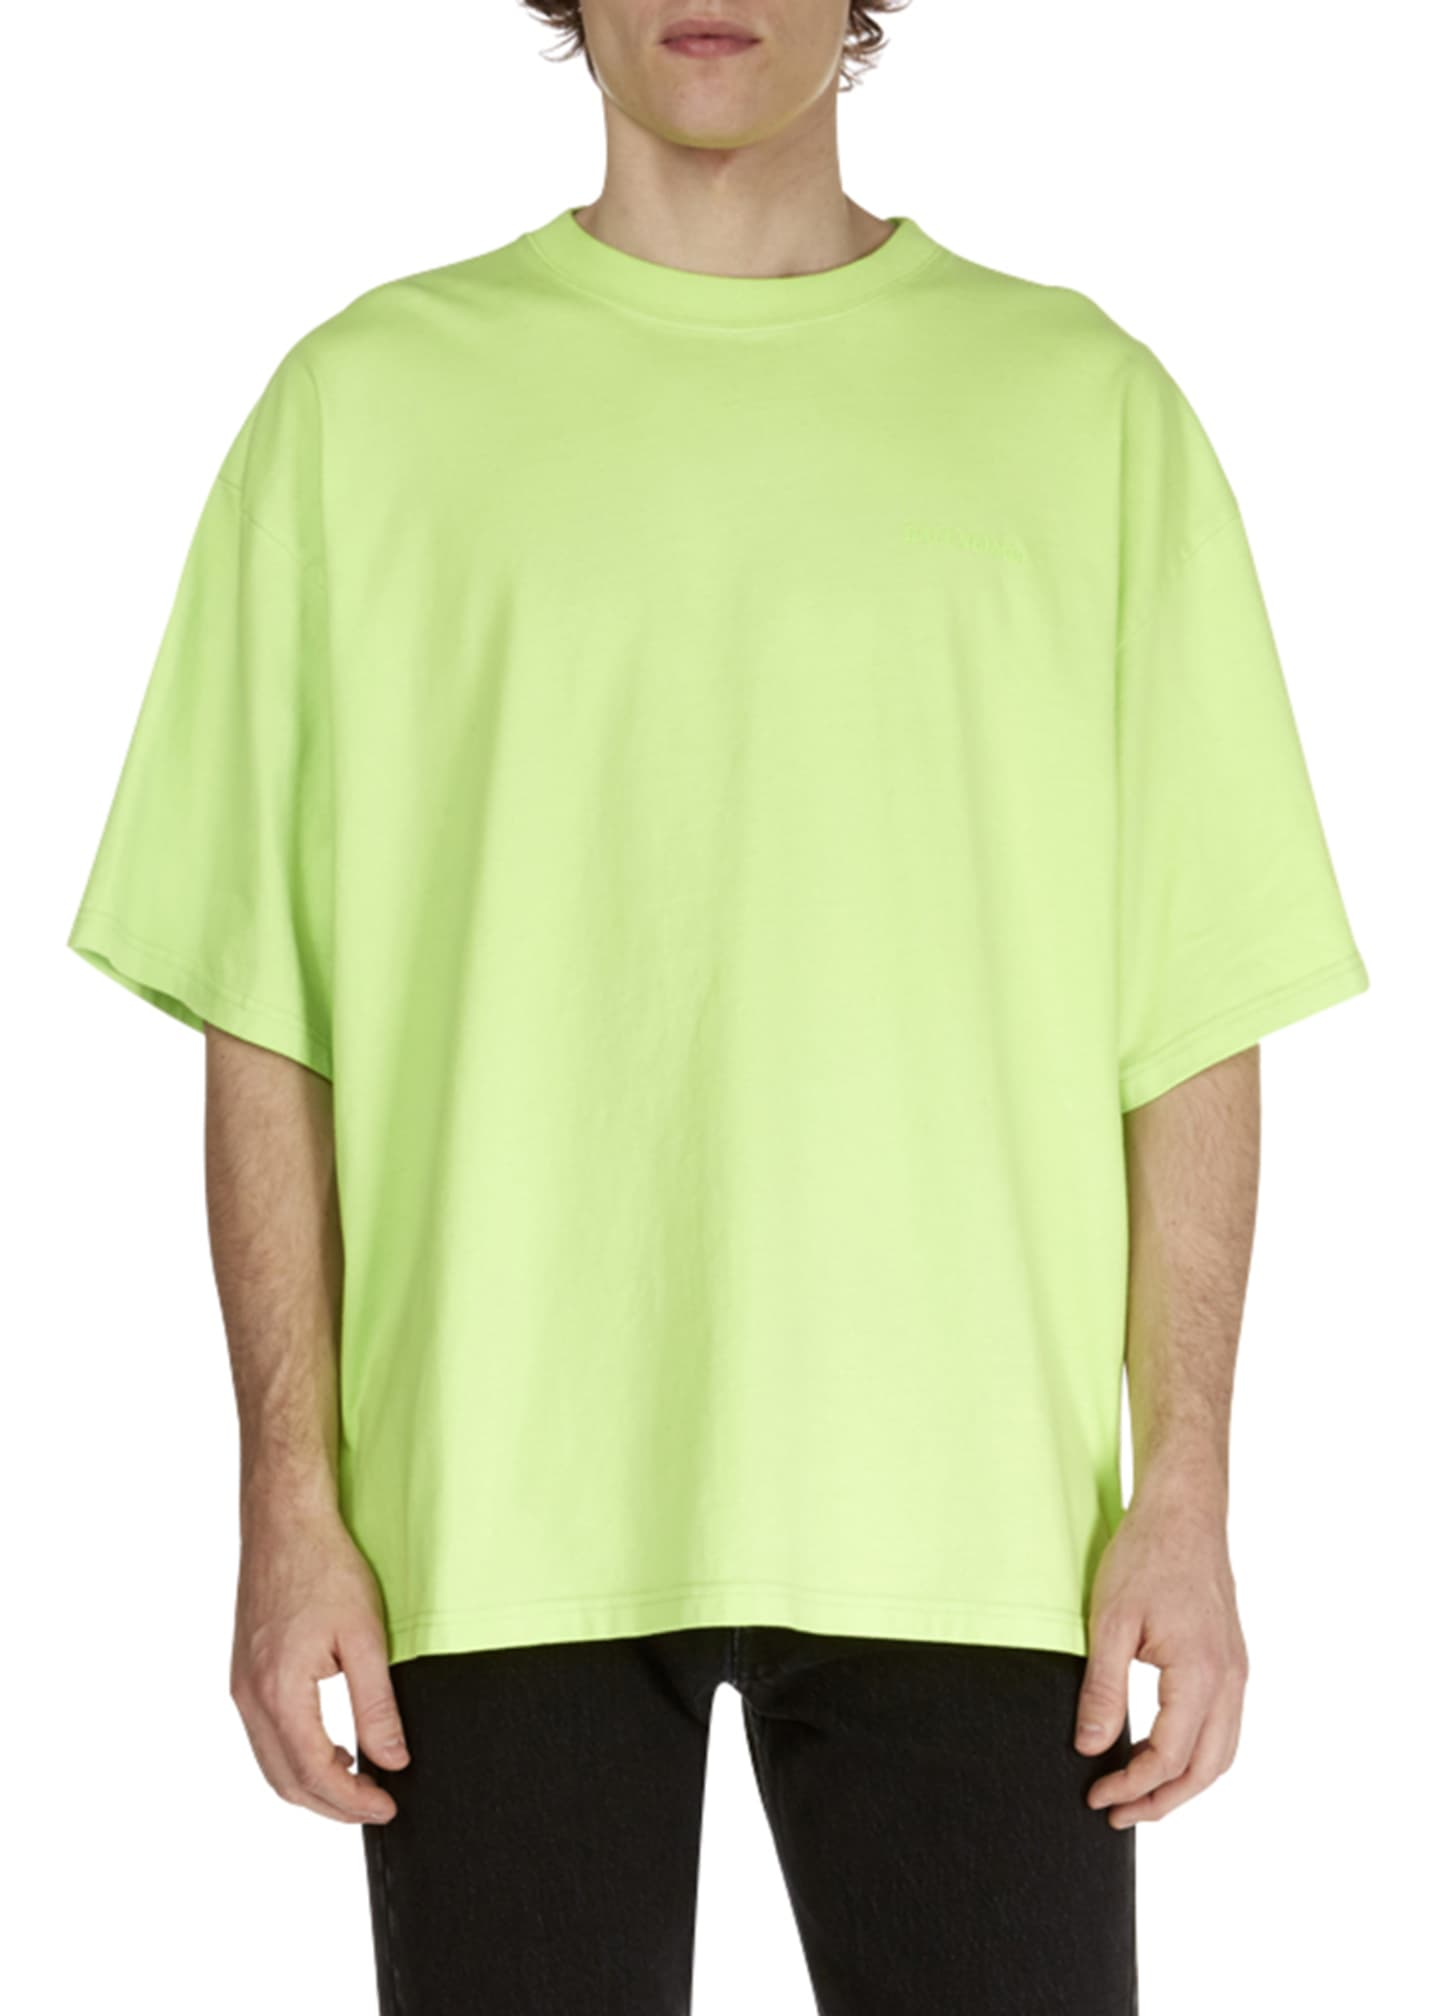 Balenciaga Men's Ego Cycle Graphic T-Shirt